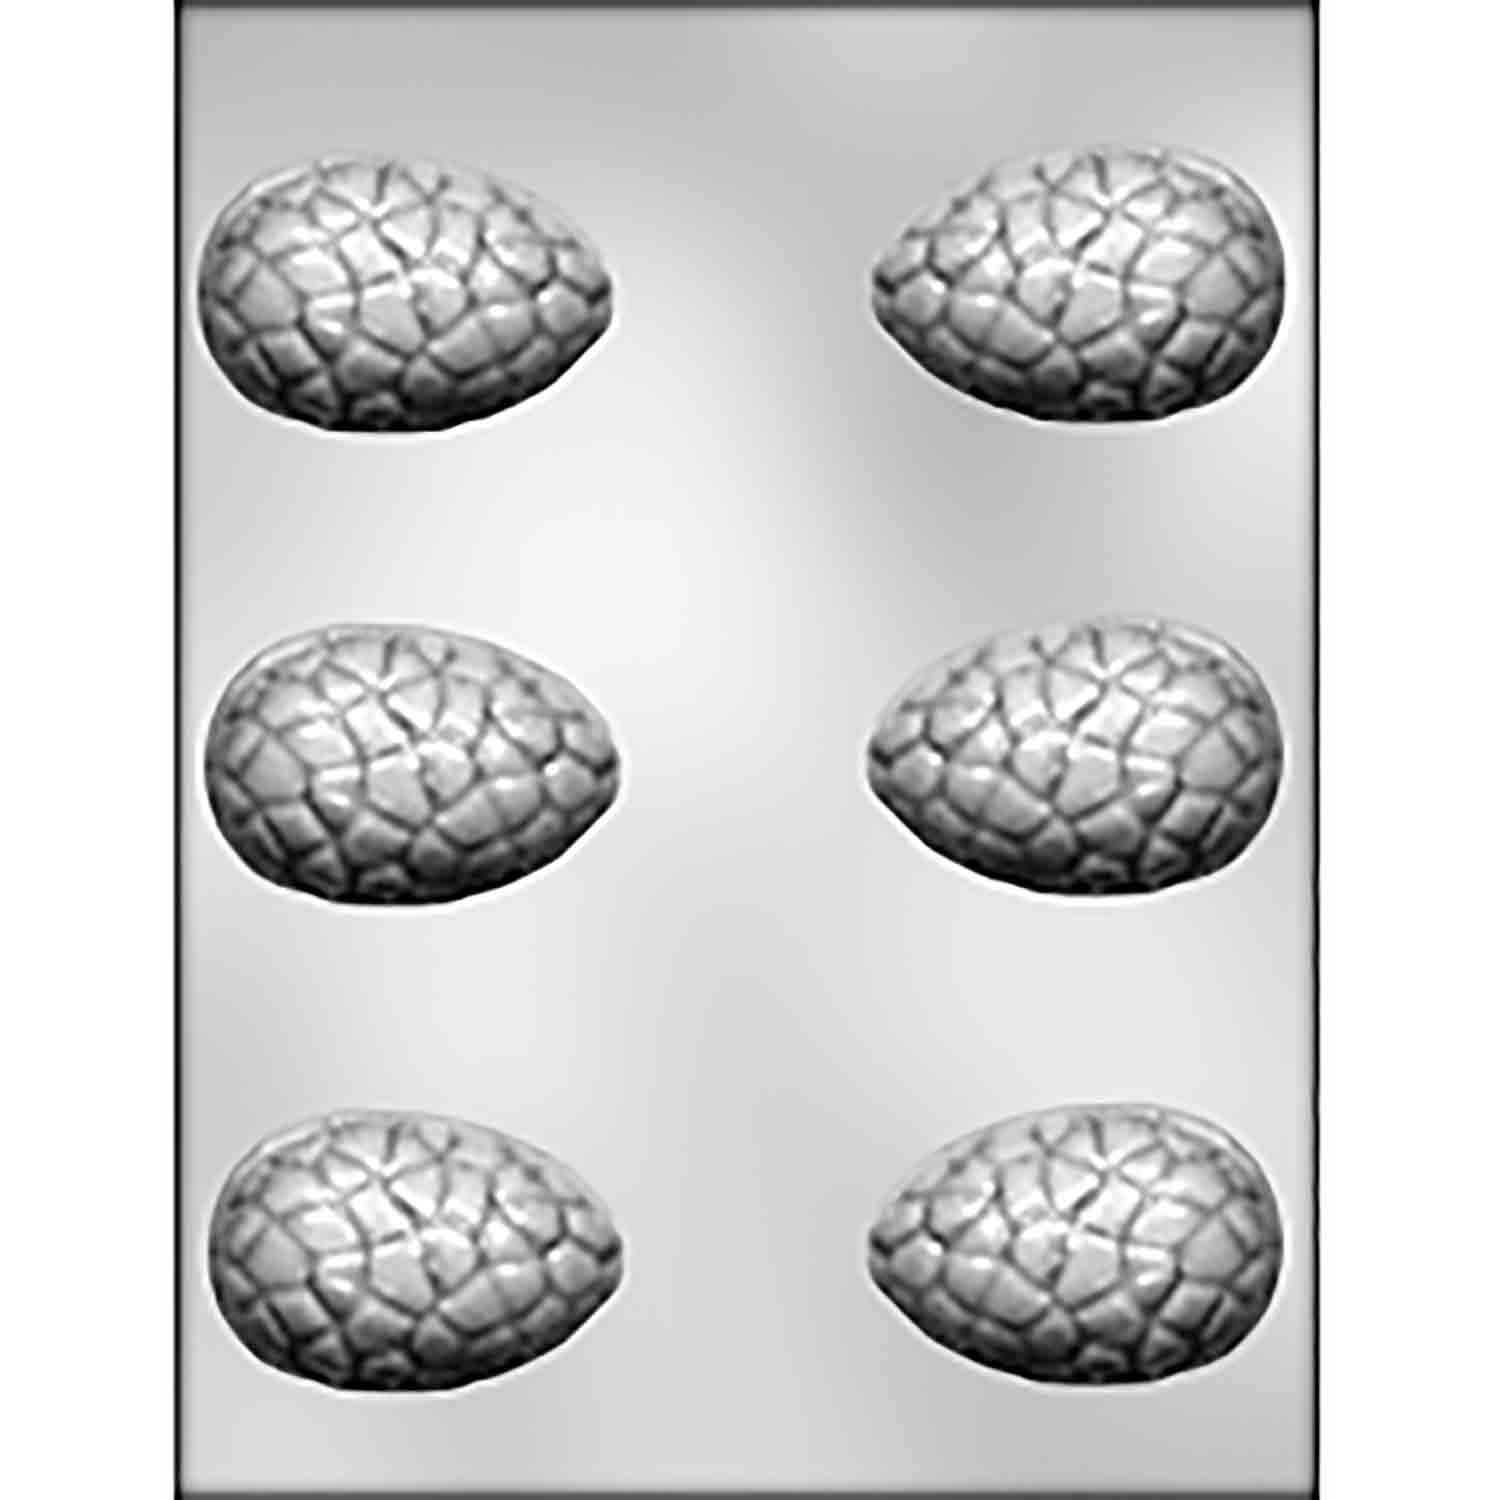 3D Small Cracked Egg Chocolate Candy Mold